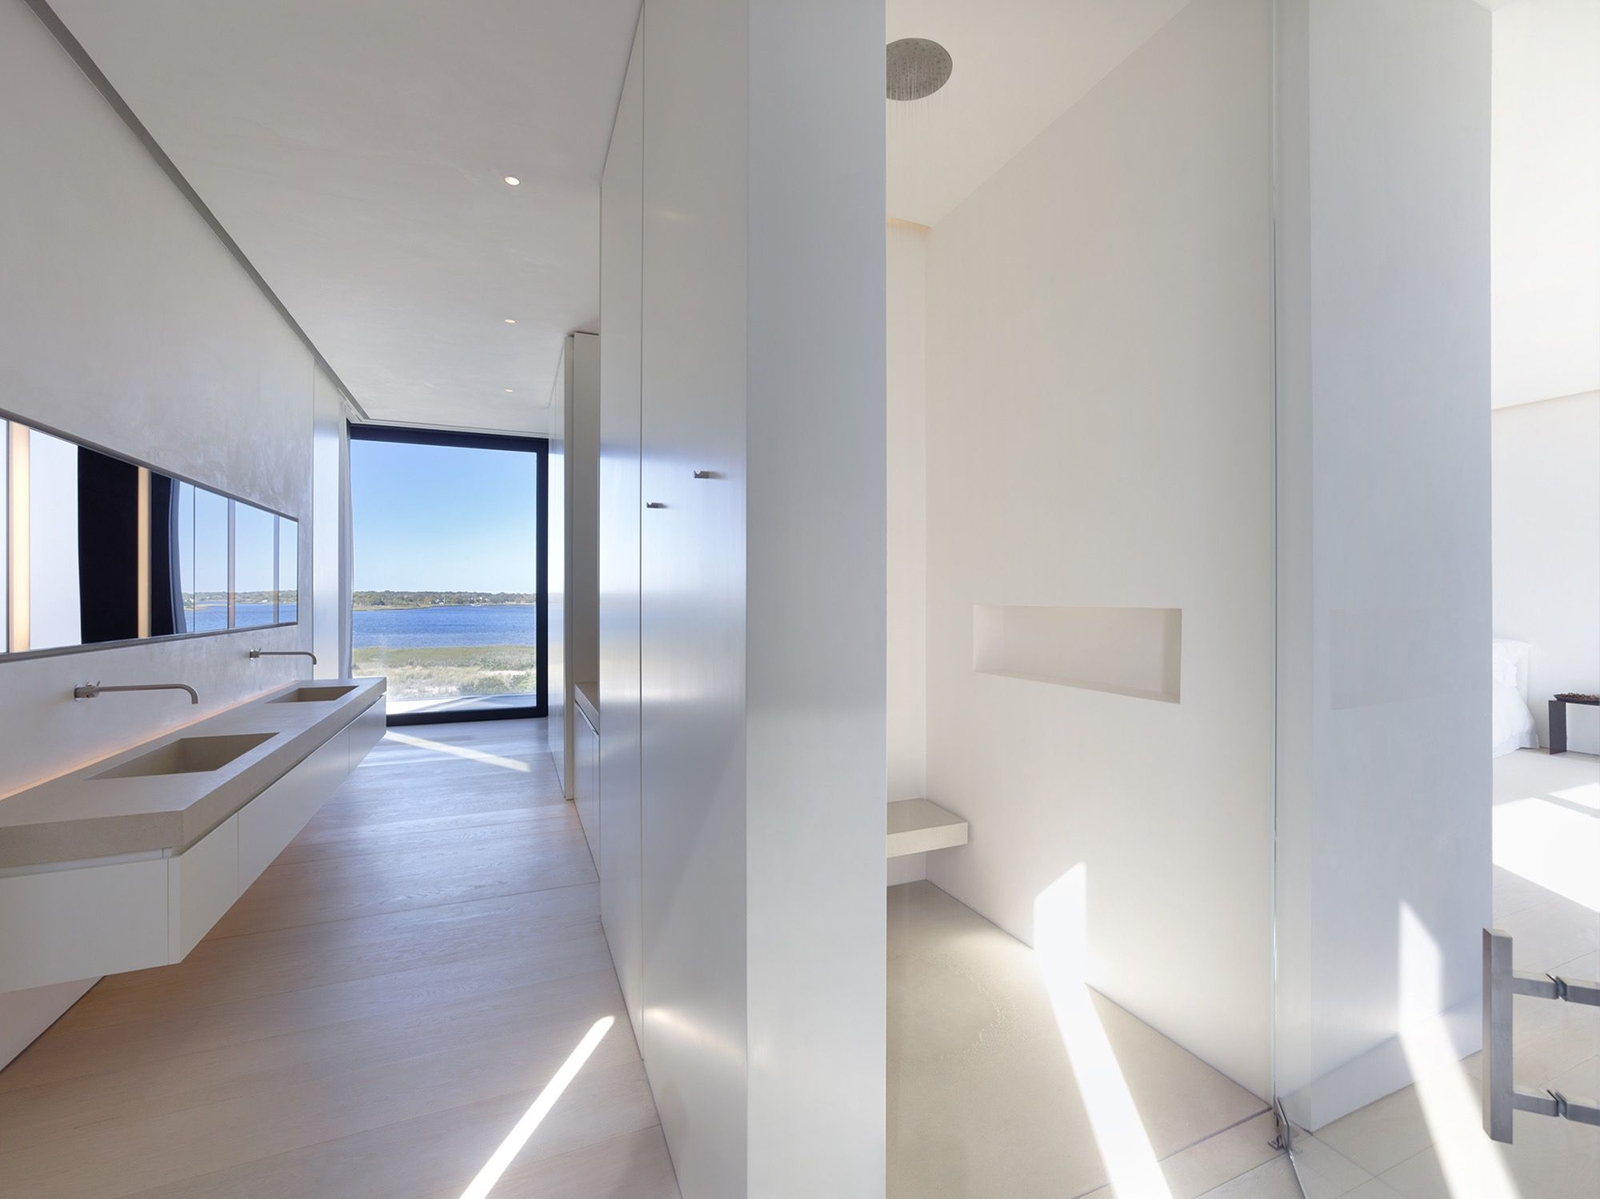 bath, bathroom, minimal, ocean view